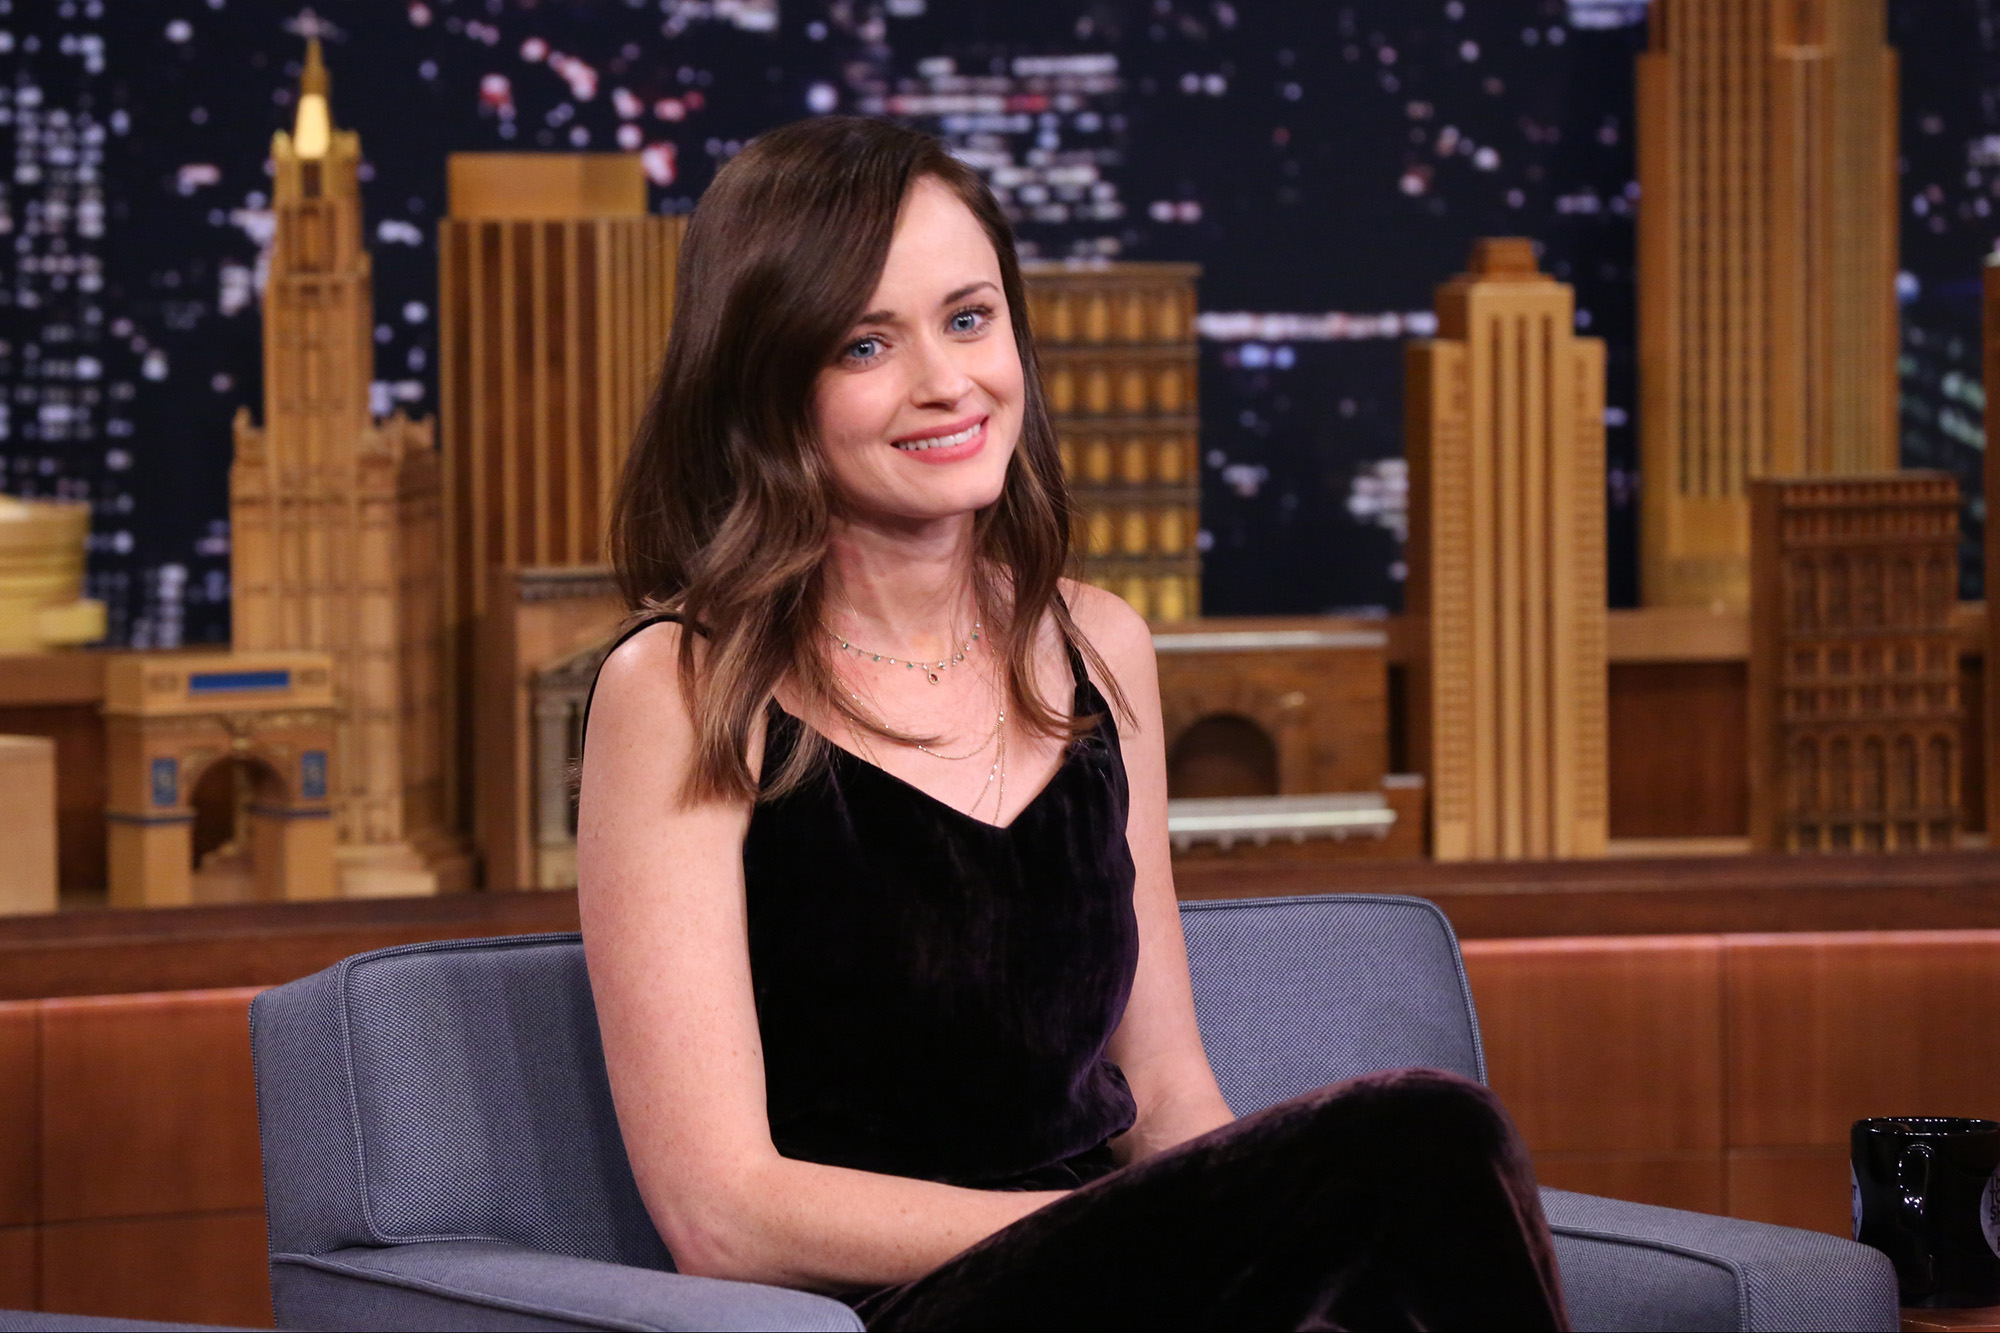 Alexis Bledel during an interview on November 28, 2016 -- (Photo by: Andrew Lipovsky/NBC/NBCU Photo Bank via Getty Images)